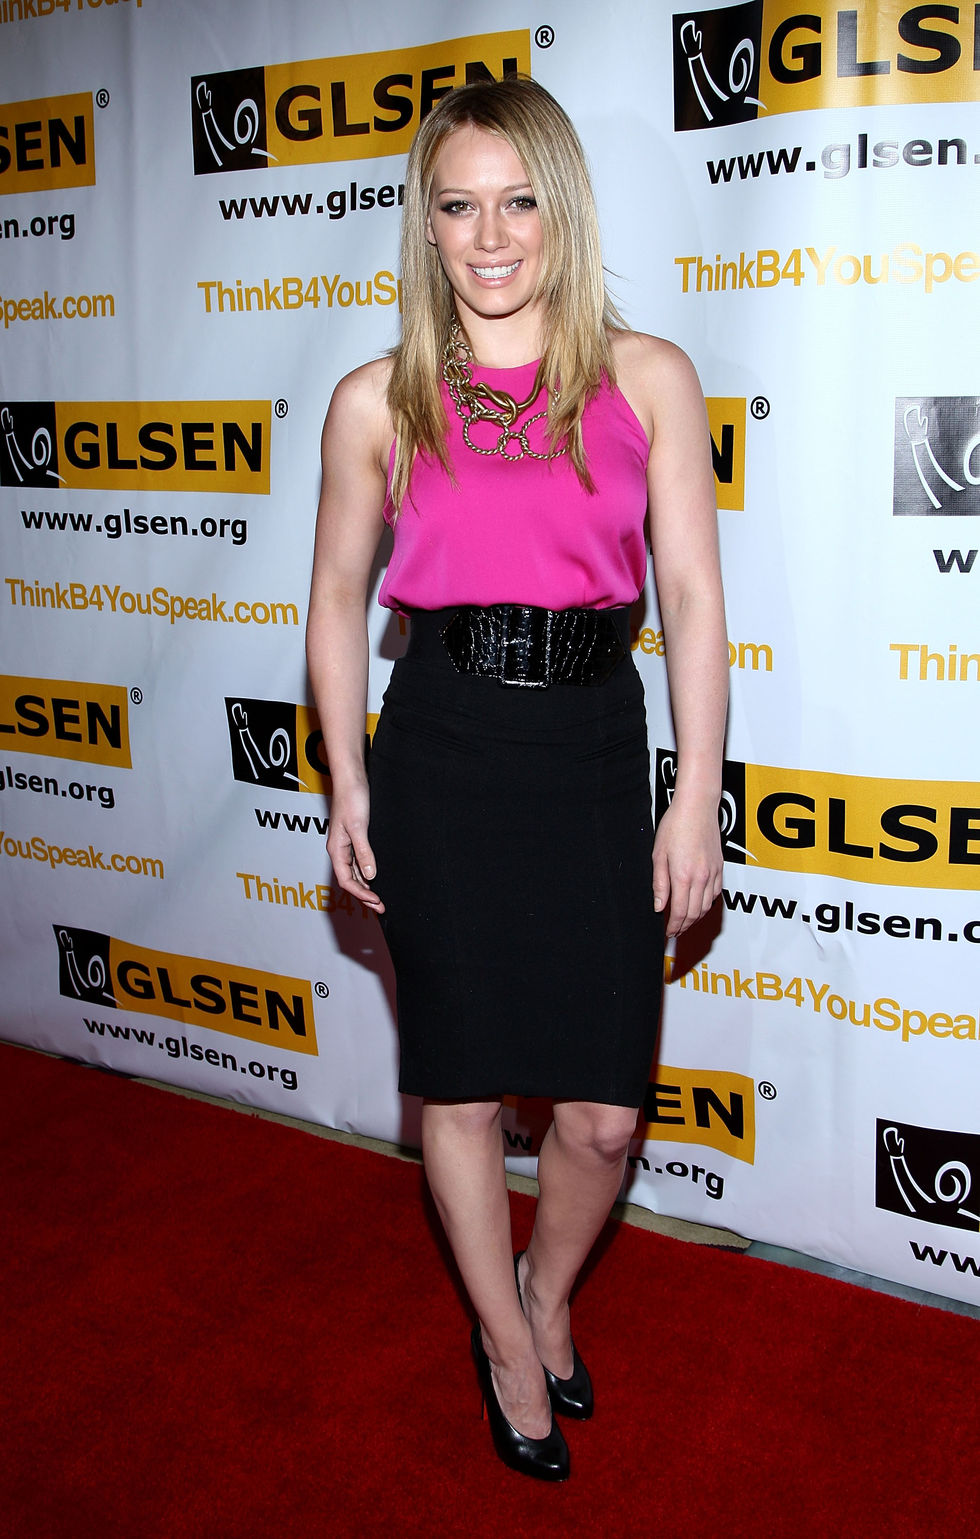 hilary-duff-4th-annual-glsen-respect-awards-in-beverly-hills-01